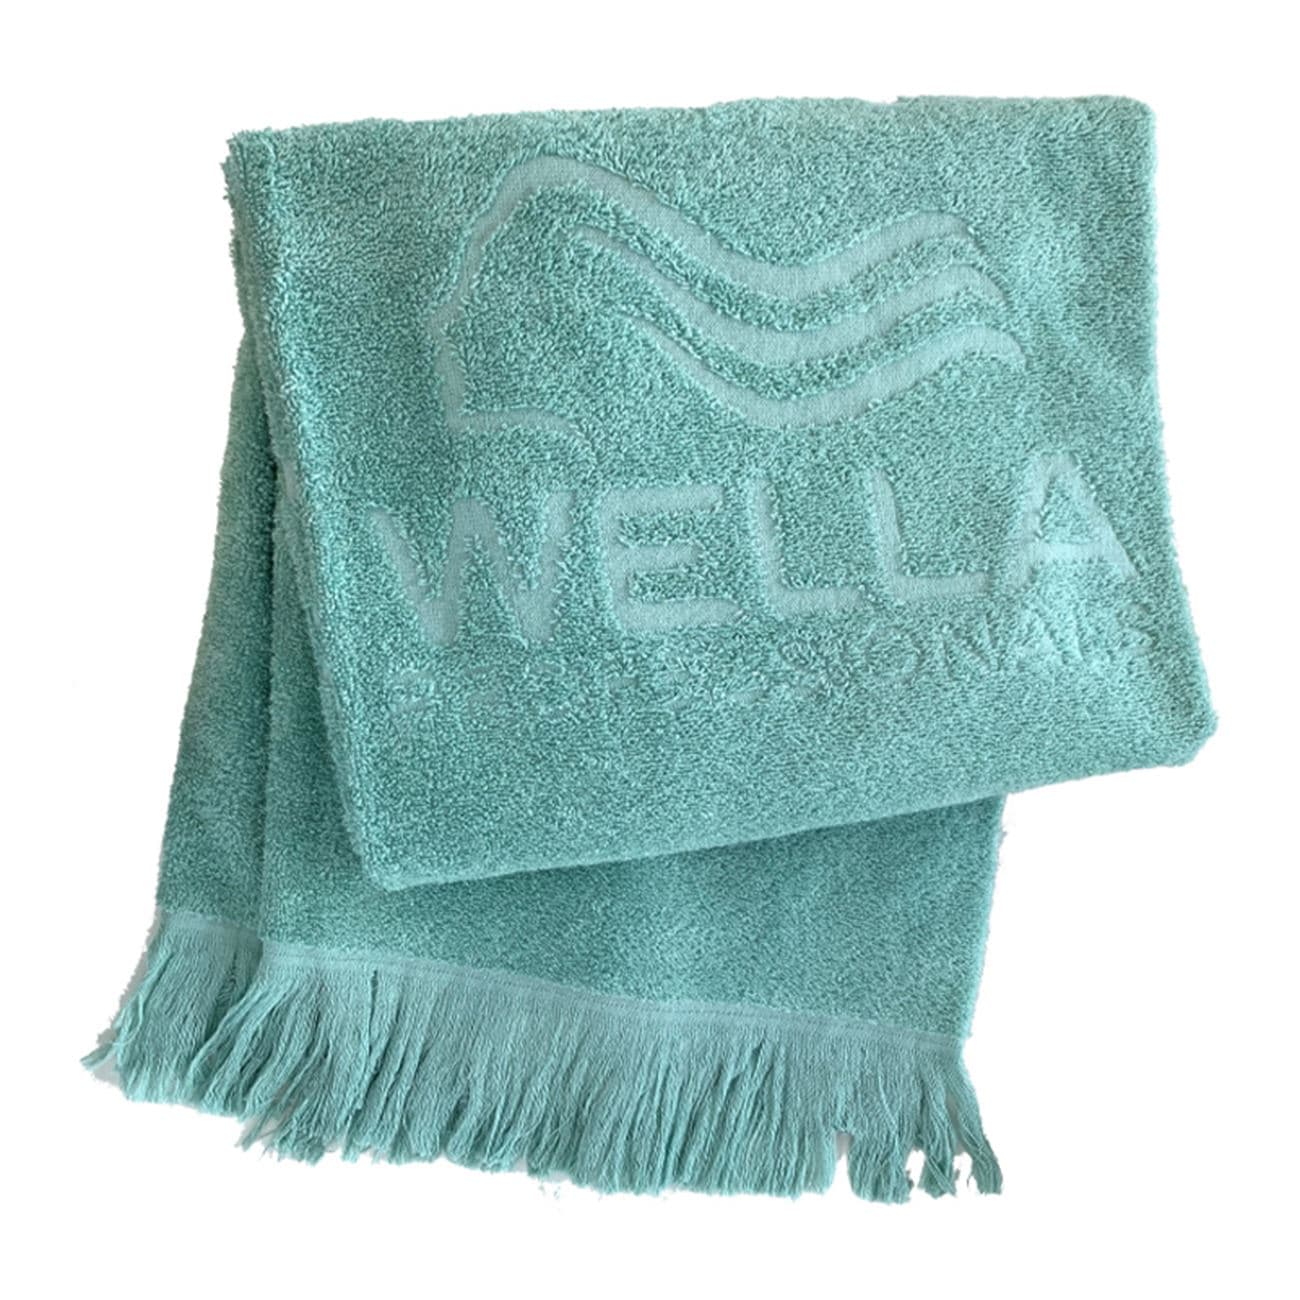 Wella Professionals Beach Towel - Free Gift